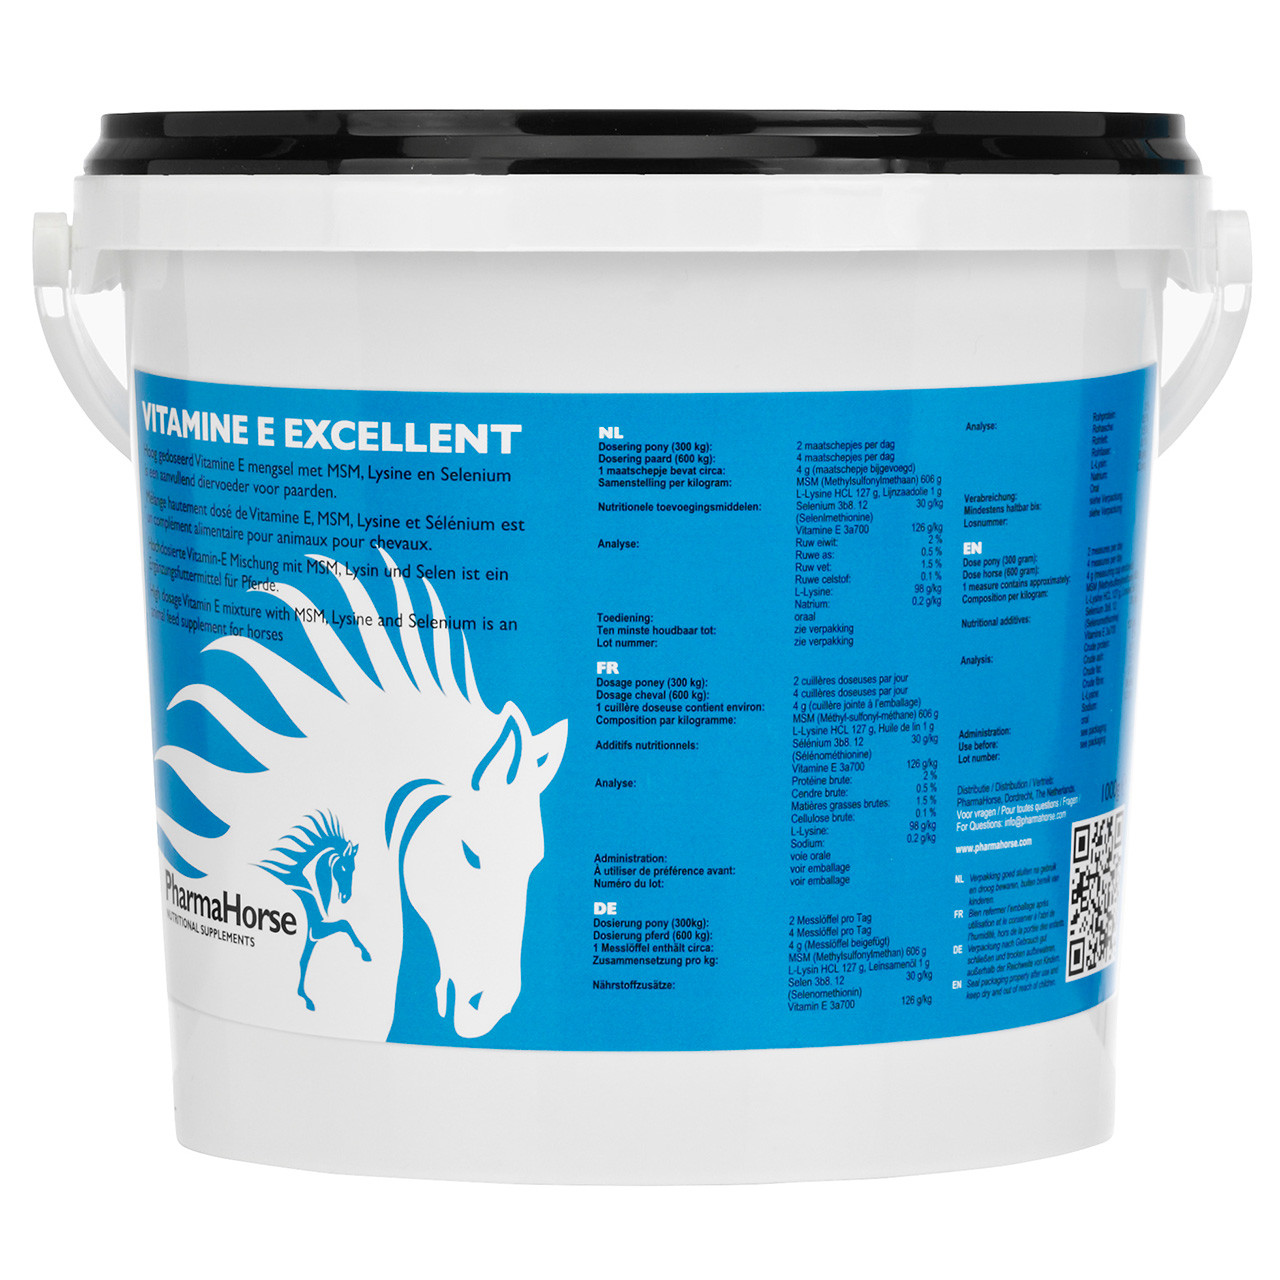 PharmaHorse Vitamine E Excellent